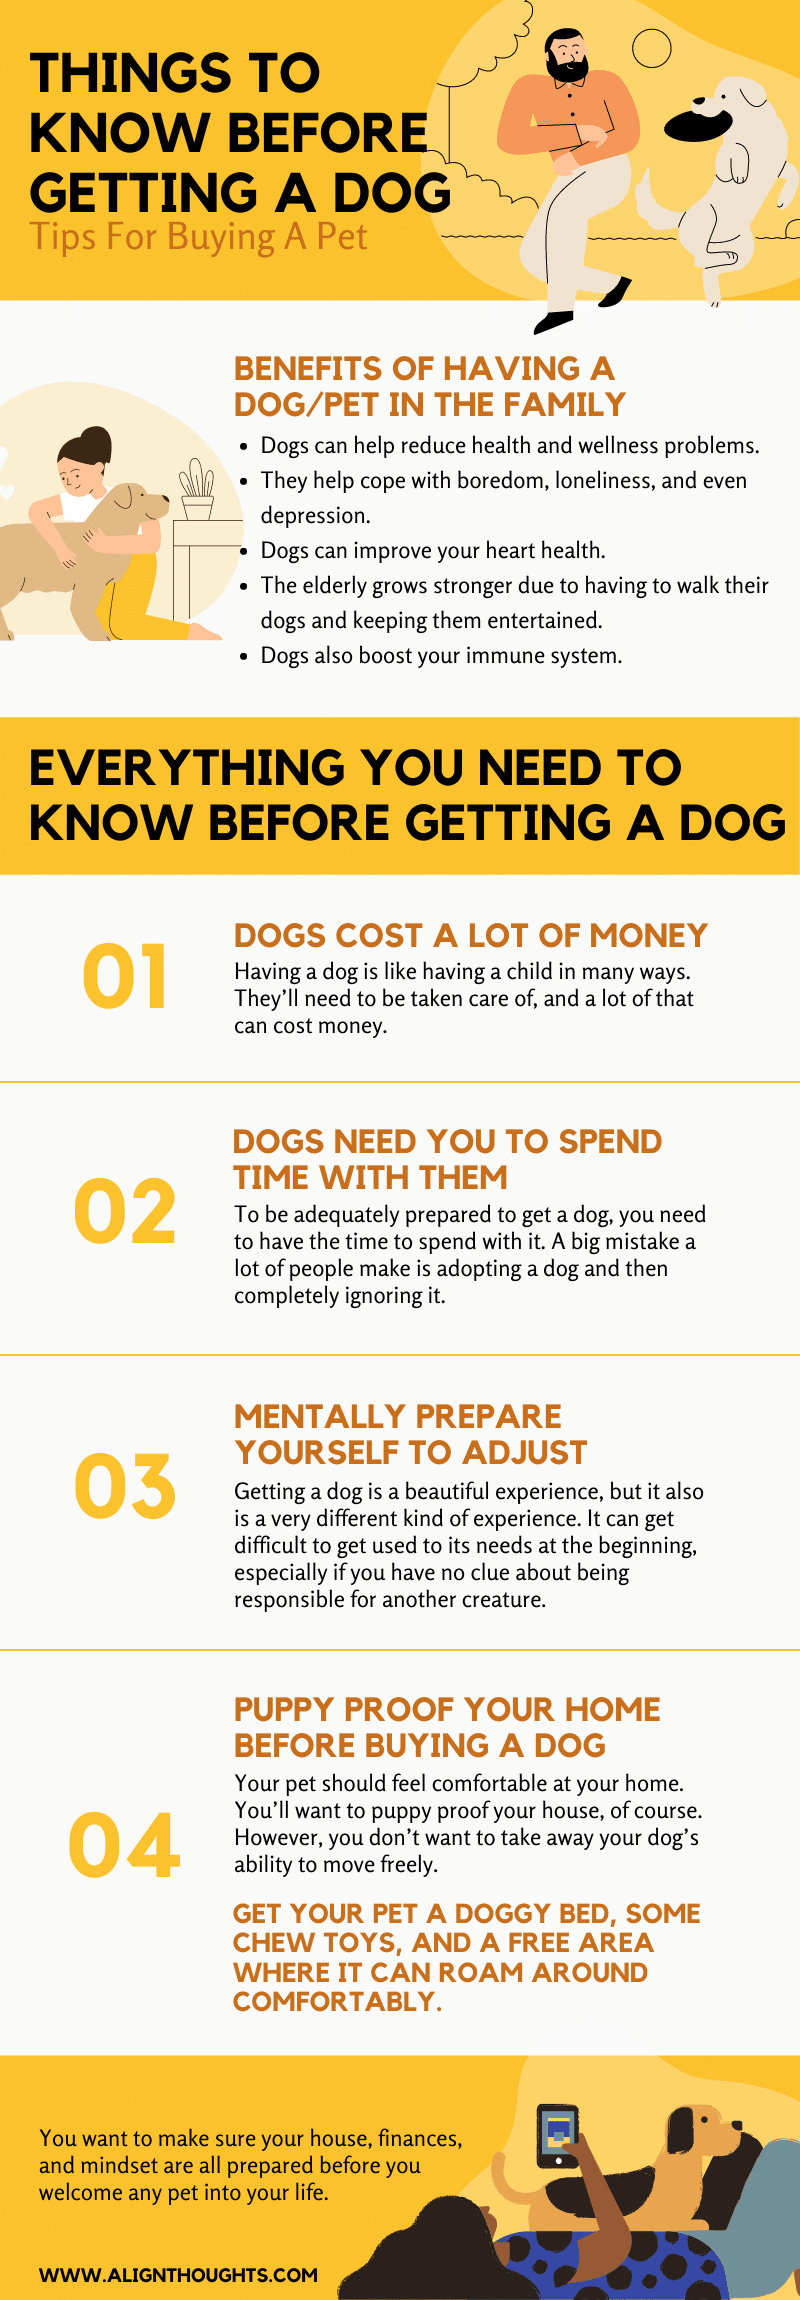 Things To Know Before Getting A Dog – Tips For Buying A Pet-AlignThoughts